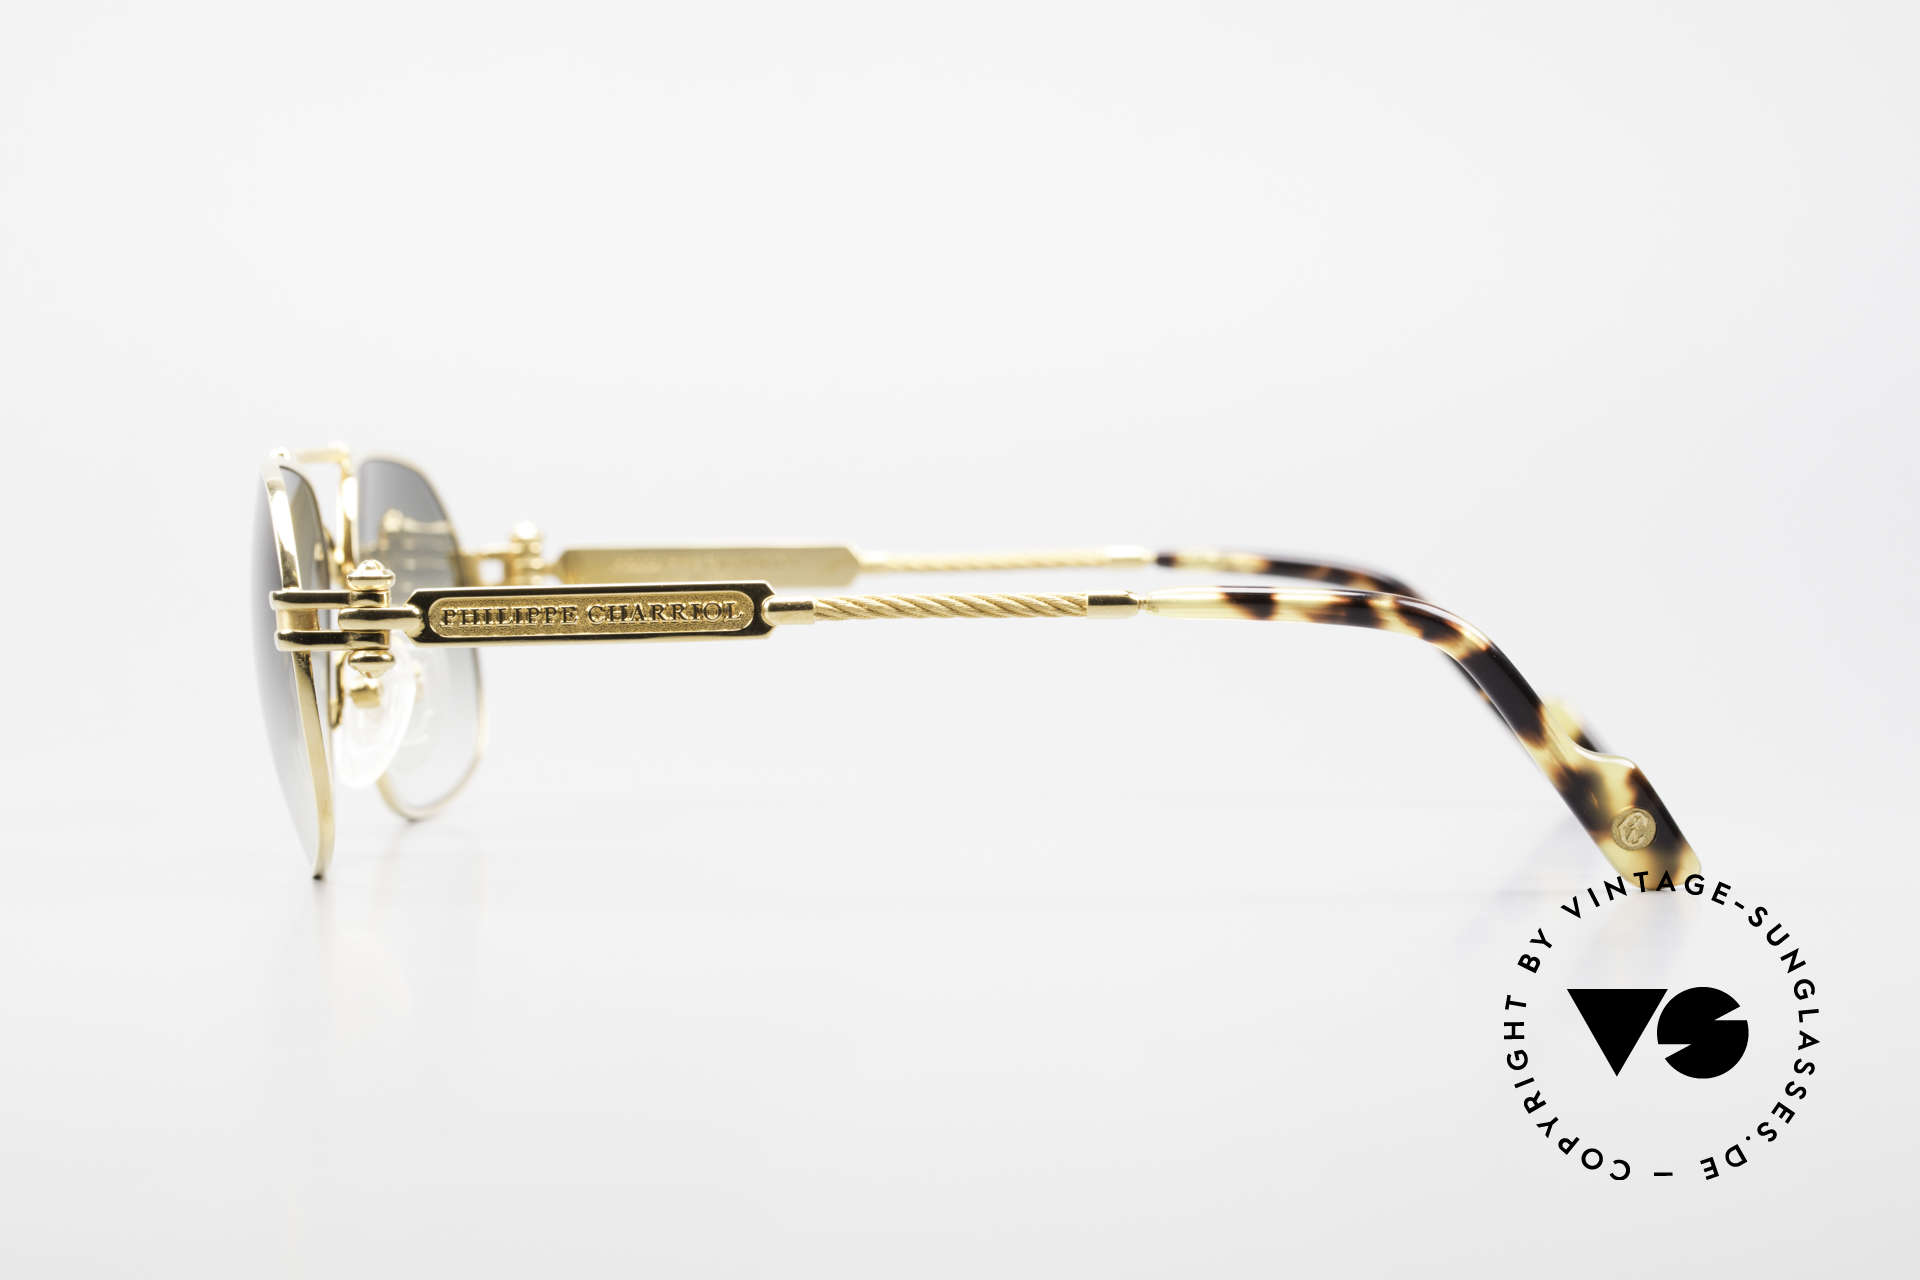 Philippe Charriol 90PP Insider 80's Luxury Sunglasses, e.g. the Charriol sunglasses are double GOLD-plated, Made for Men